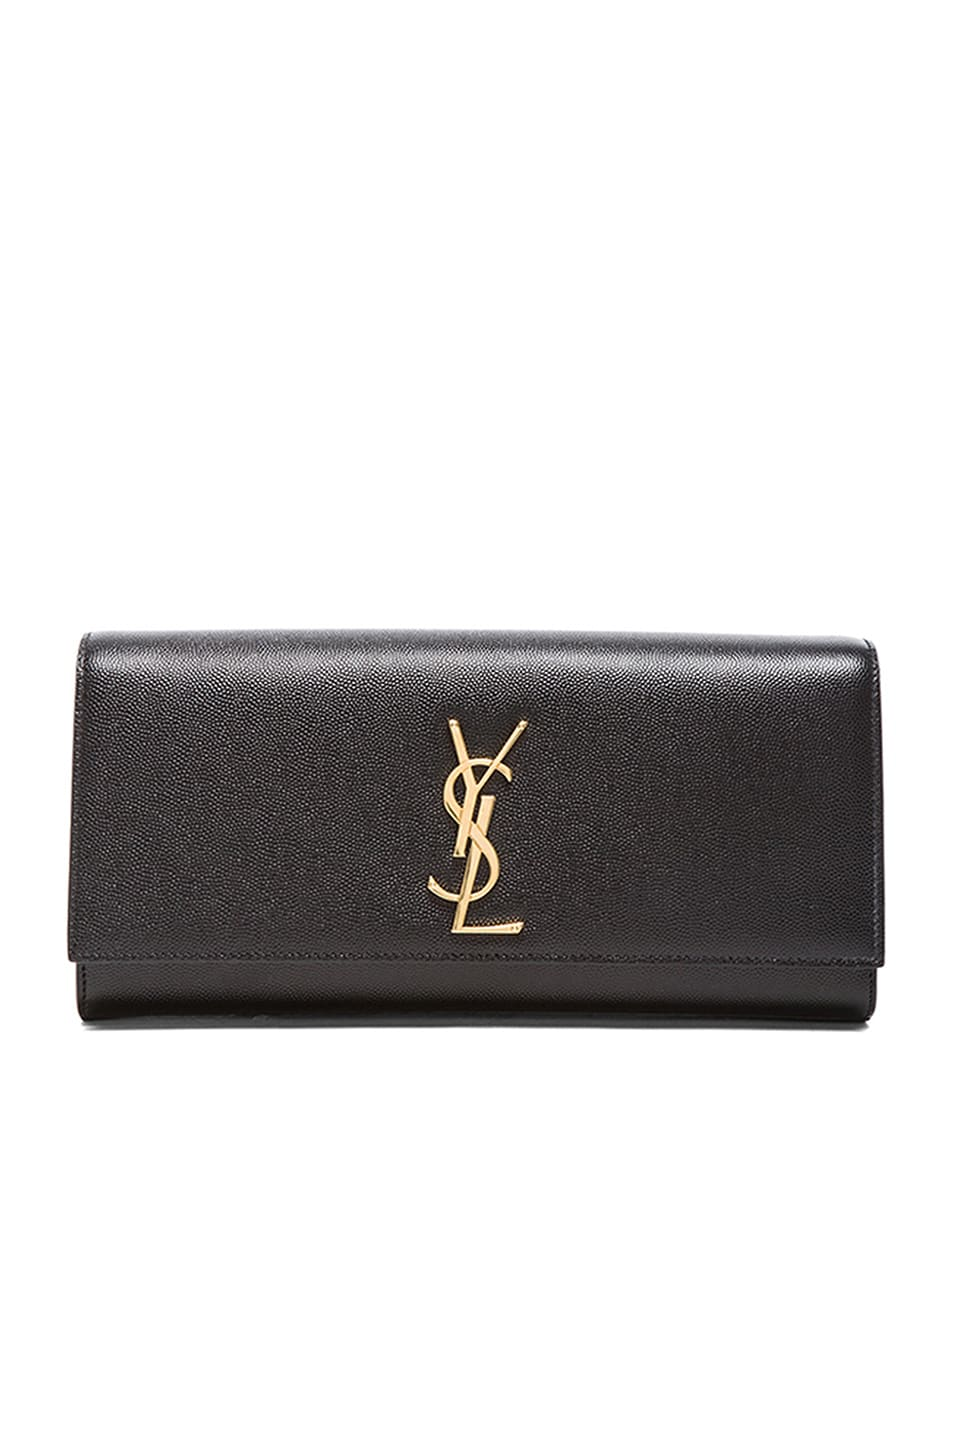 Image 1 of Saint Laurent Monogram Clutch in Black